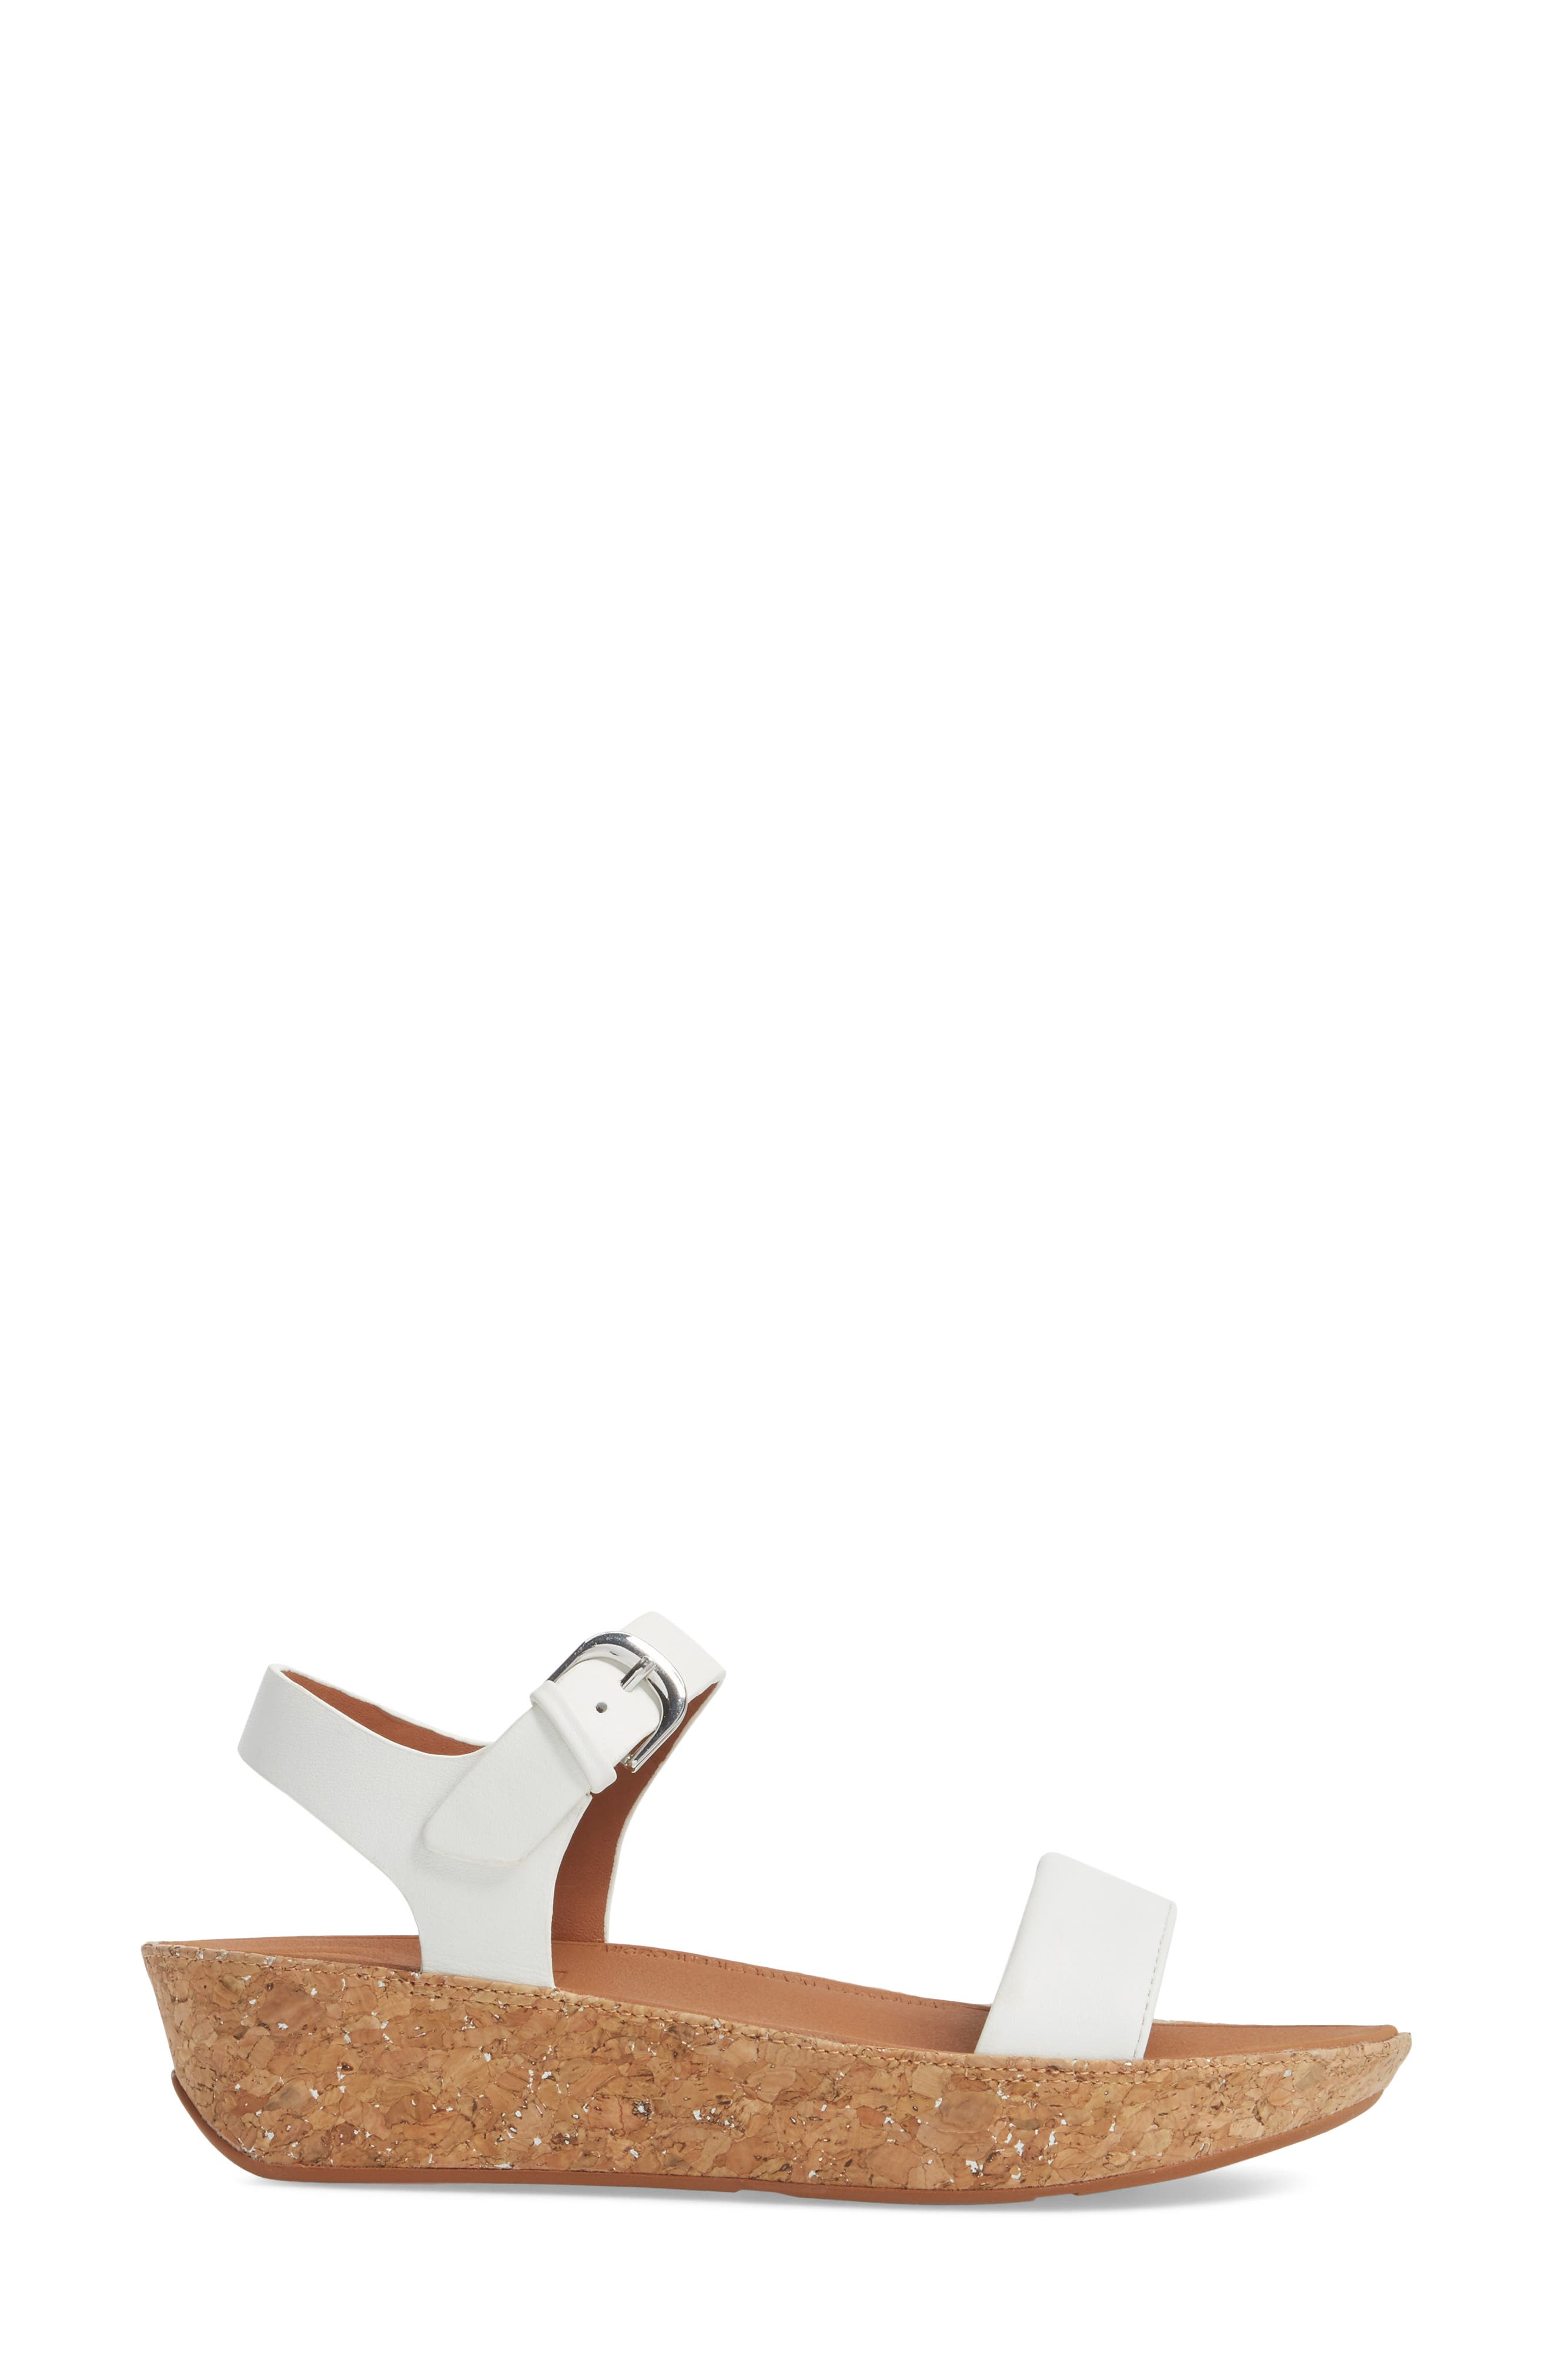 Bon II Platform Sandal,                             Alternate thumbnail 3, color,                             Urban White Leather